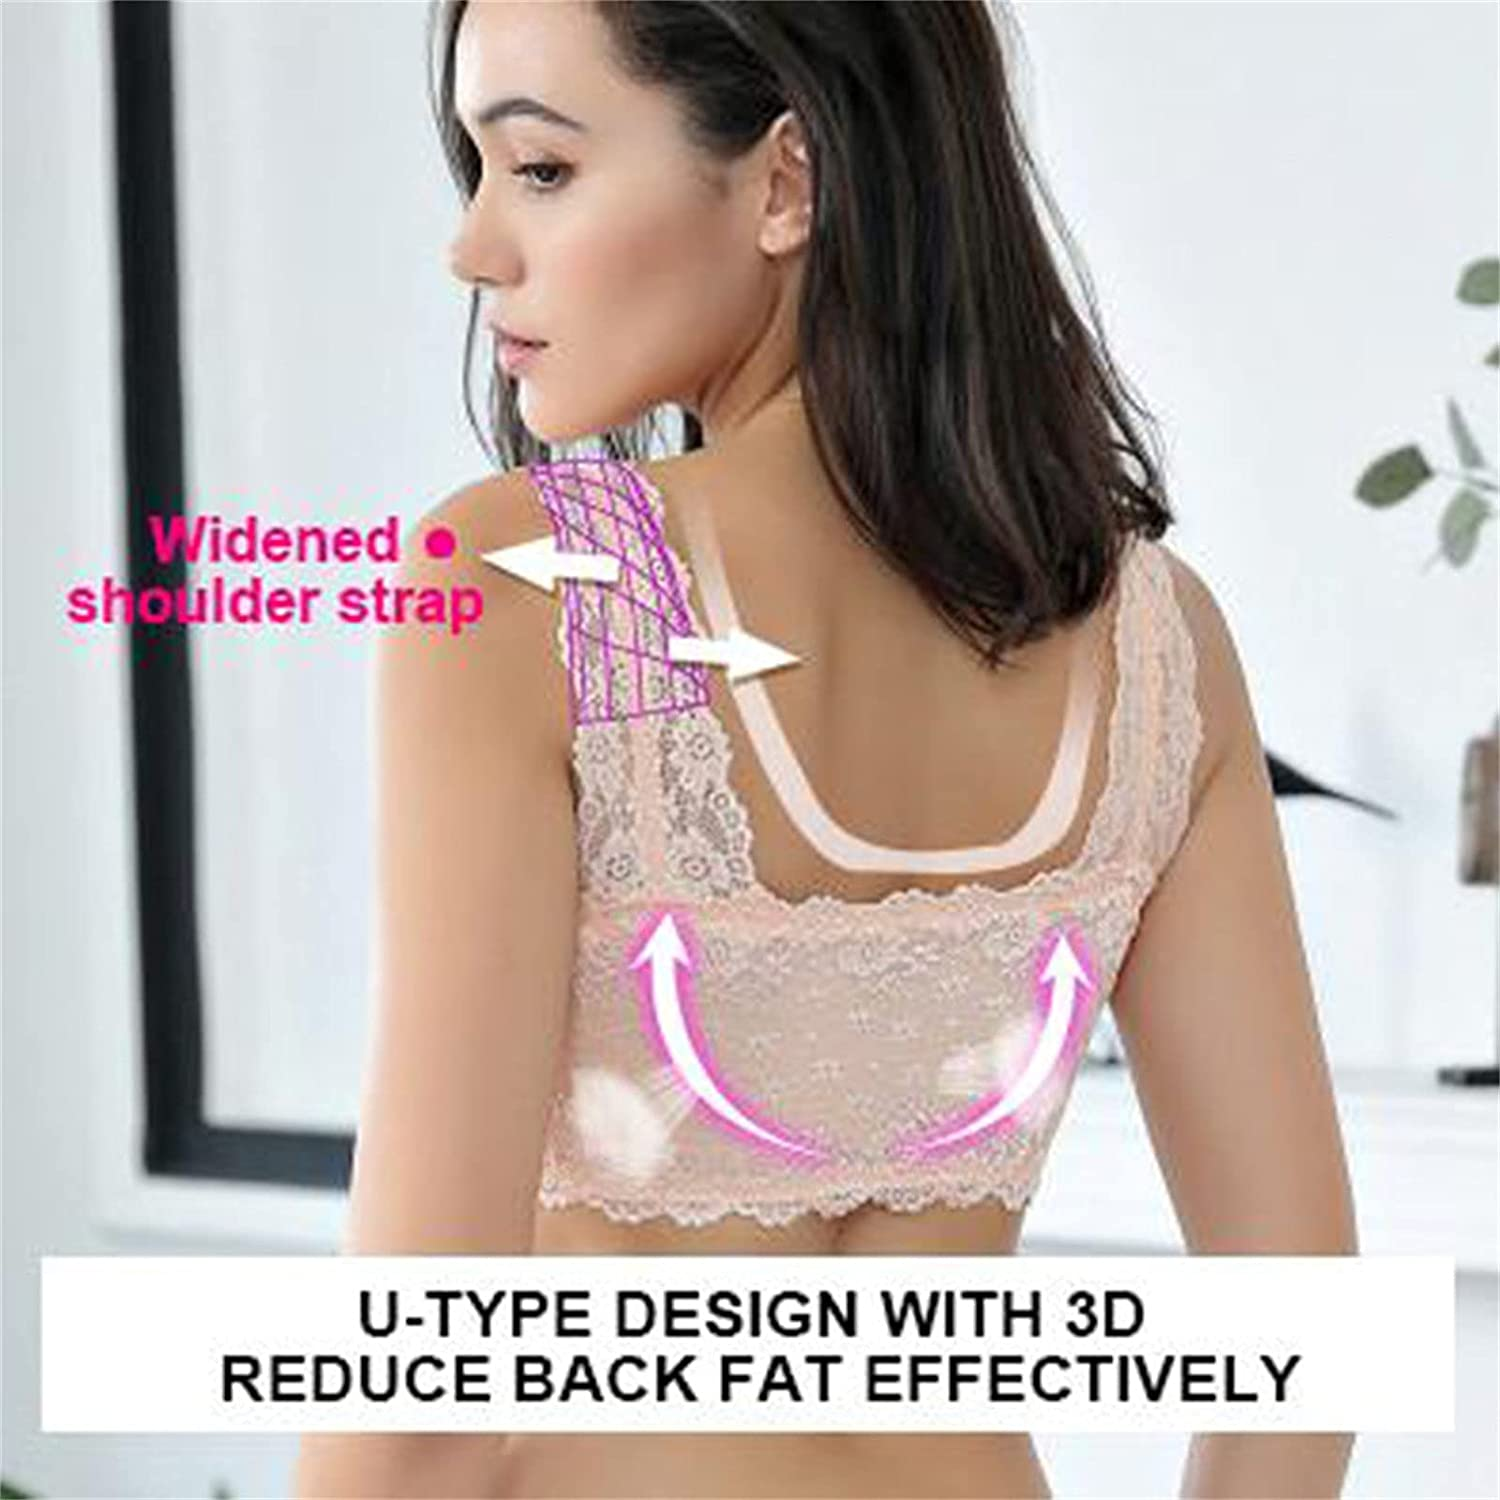 Sport Bra for Women's Adjustable Front Zipper Closure Extra-Elastic Large Wire-Free Sleep Side-Finish Lace Bra